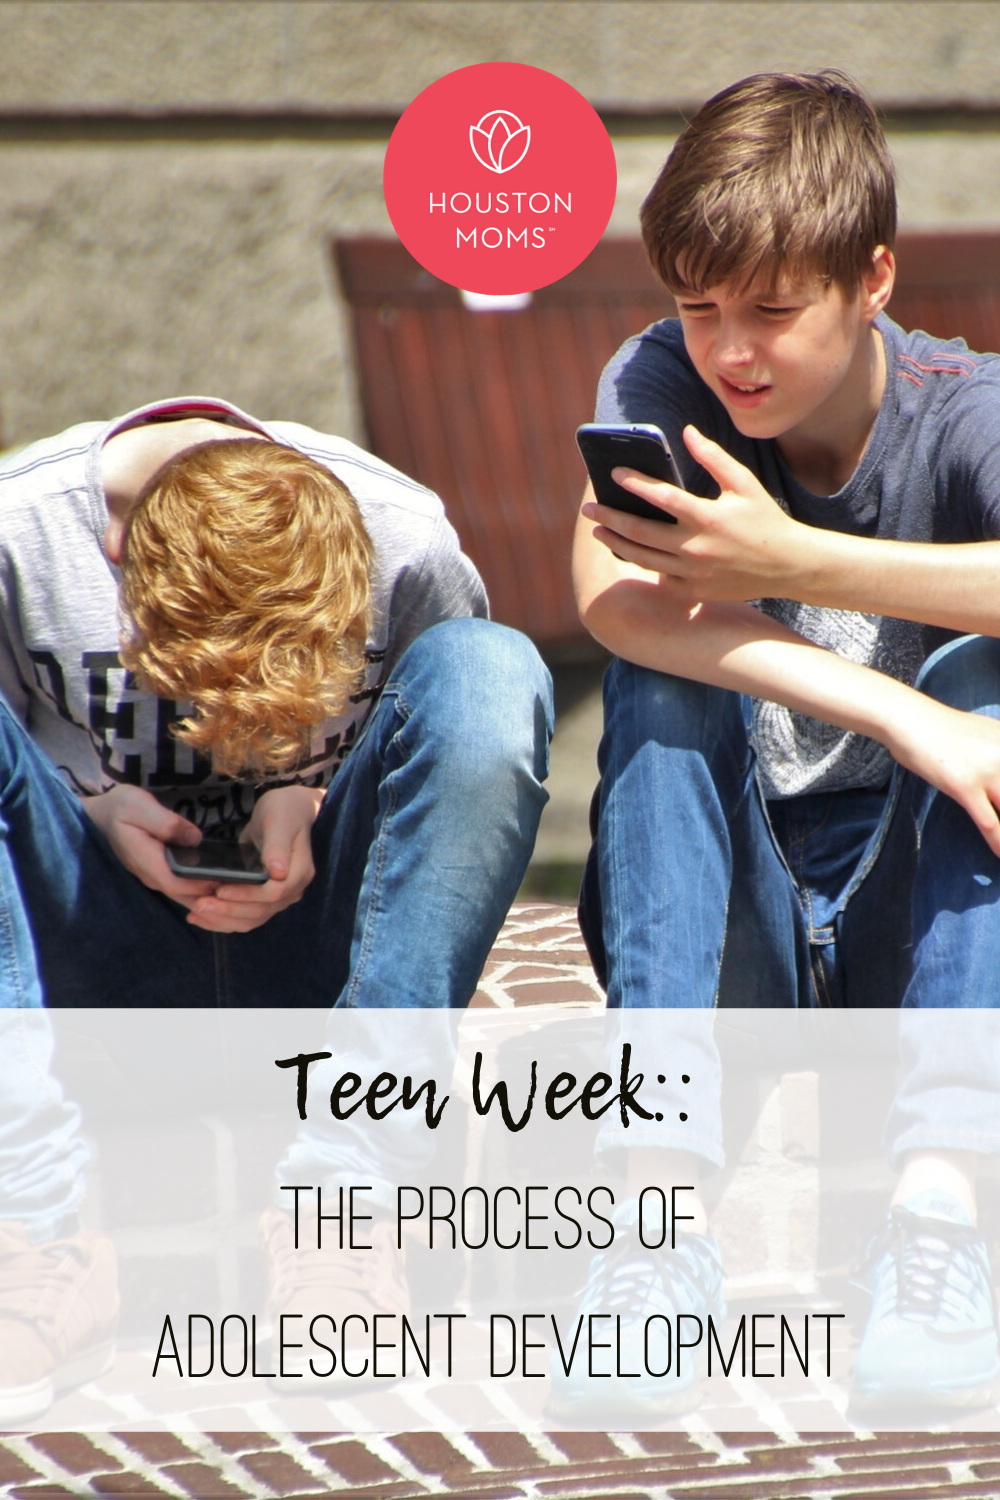 "Houston Moms ""Teen Week:: The Process of Adolescent Development"" #houstonmoms #houstonmomsblog #momsaroundhouston"